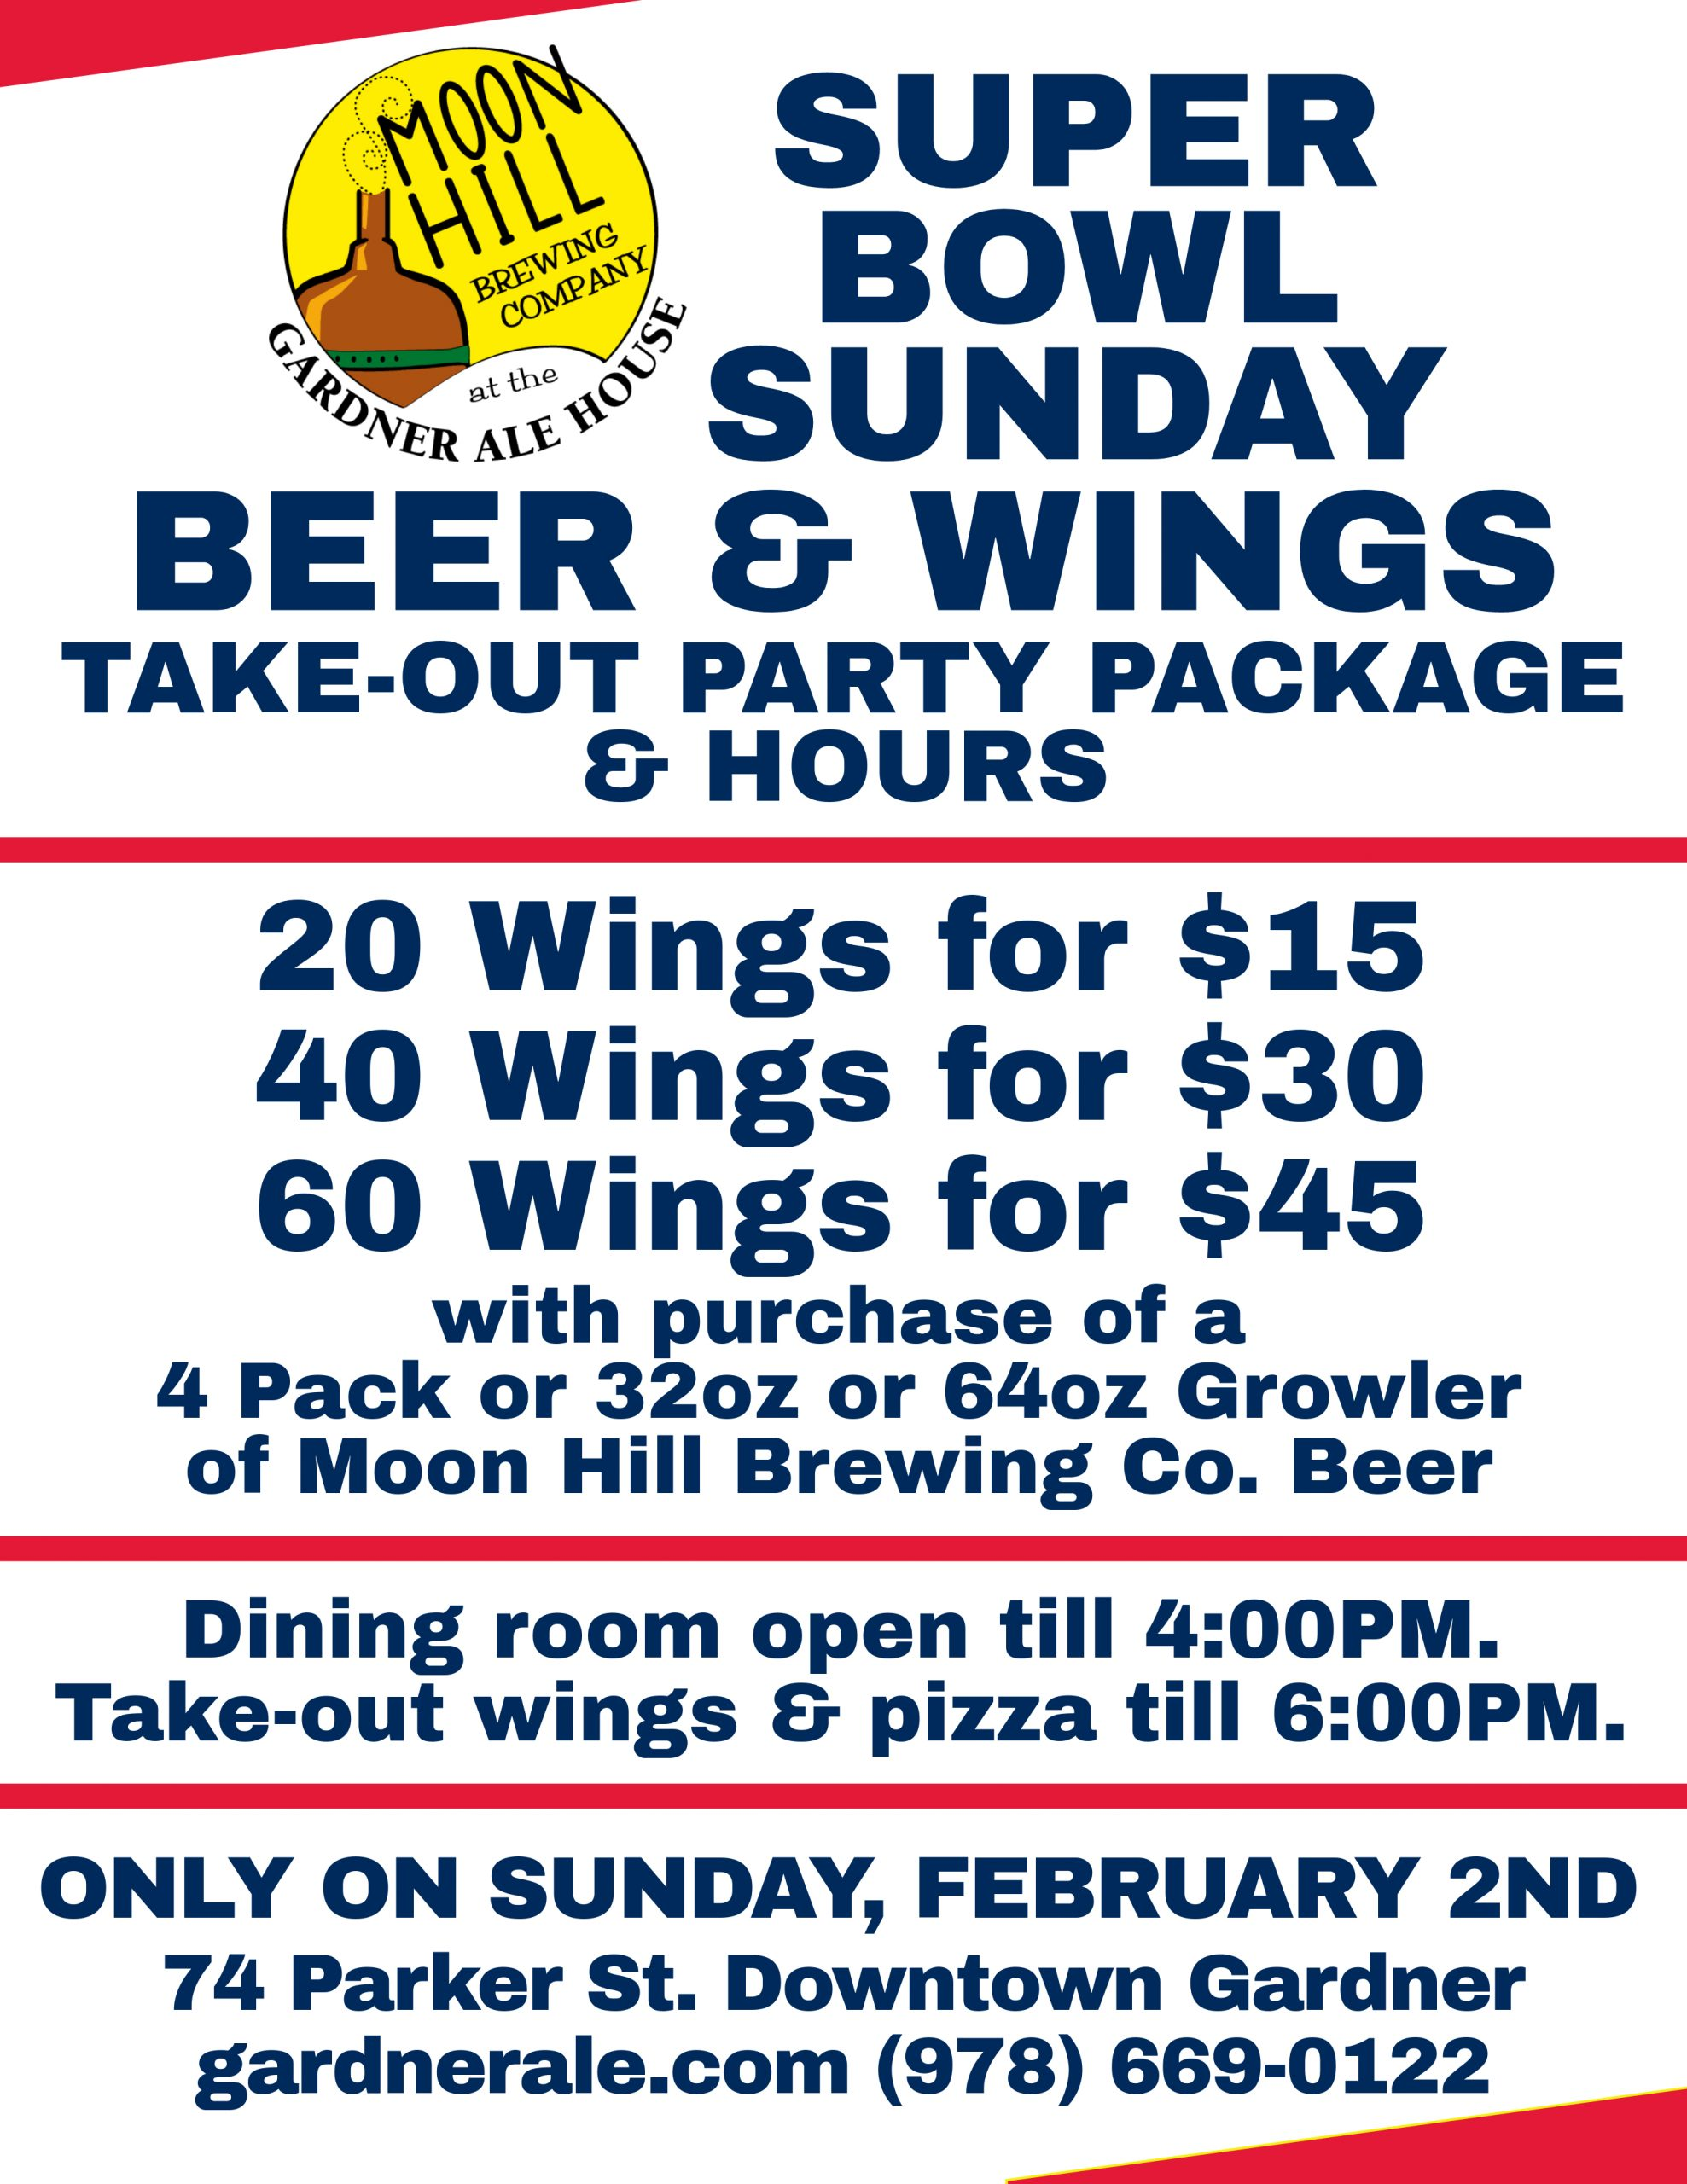 Super Bowl Sunday Special Hours and Beer & Wing Take-Out Party Package